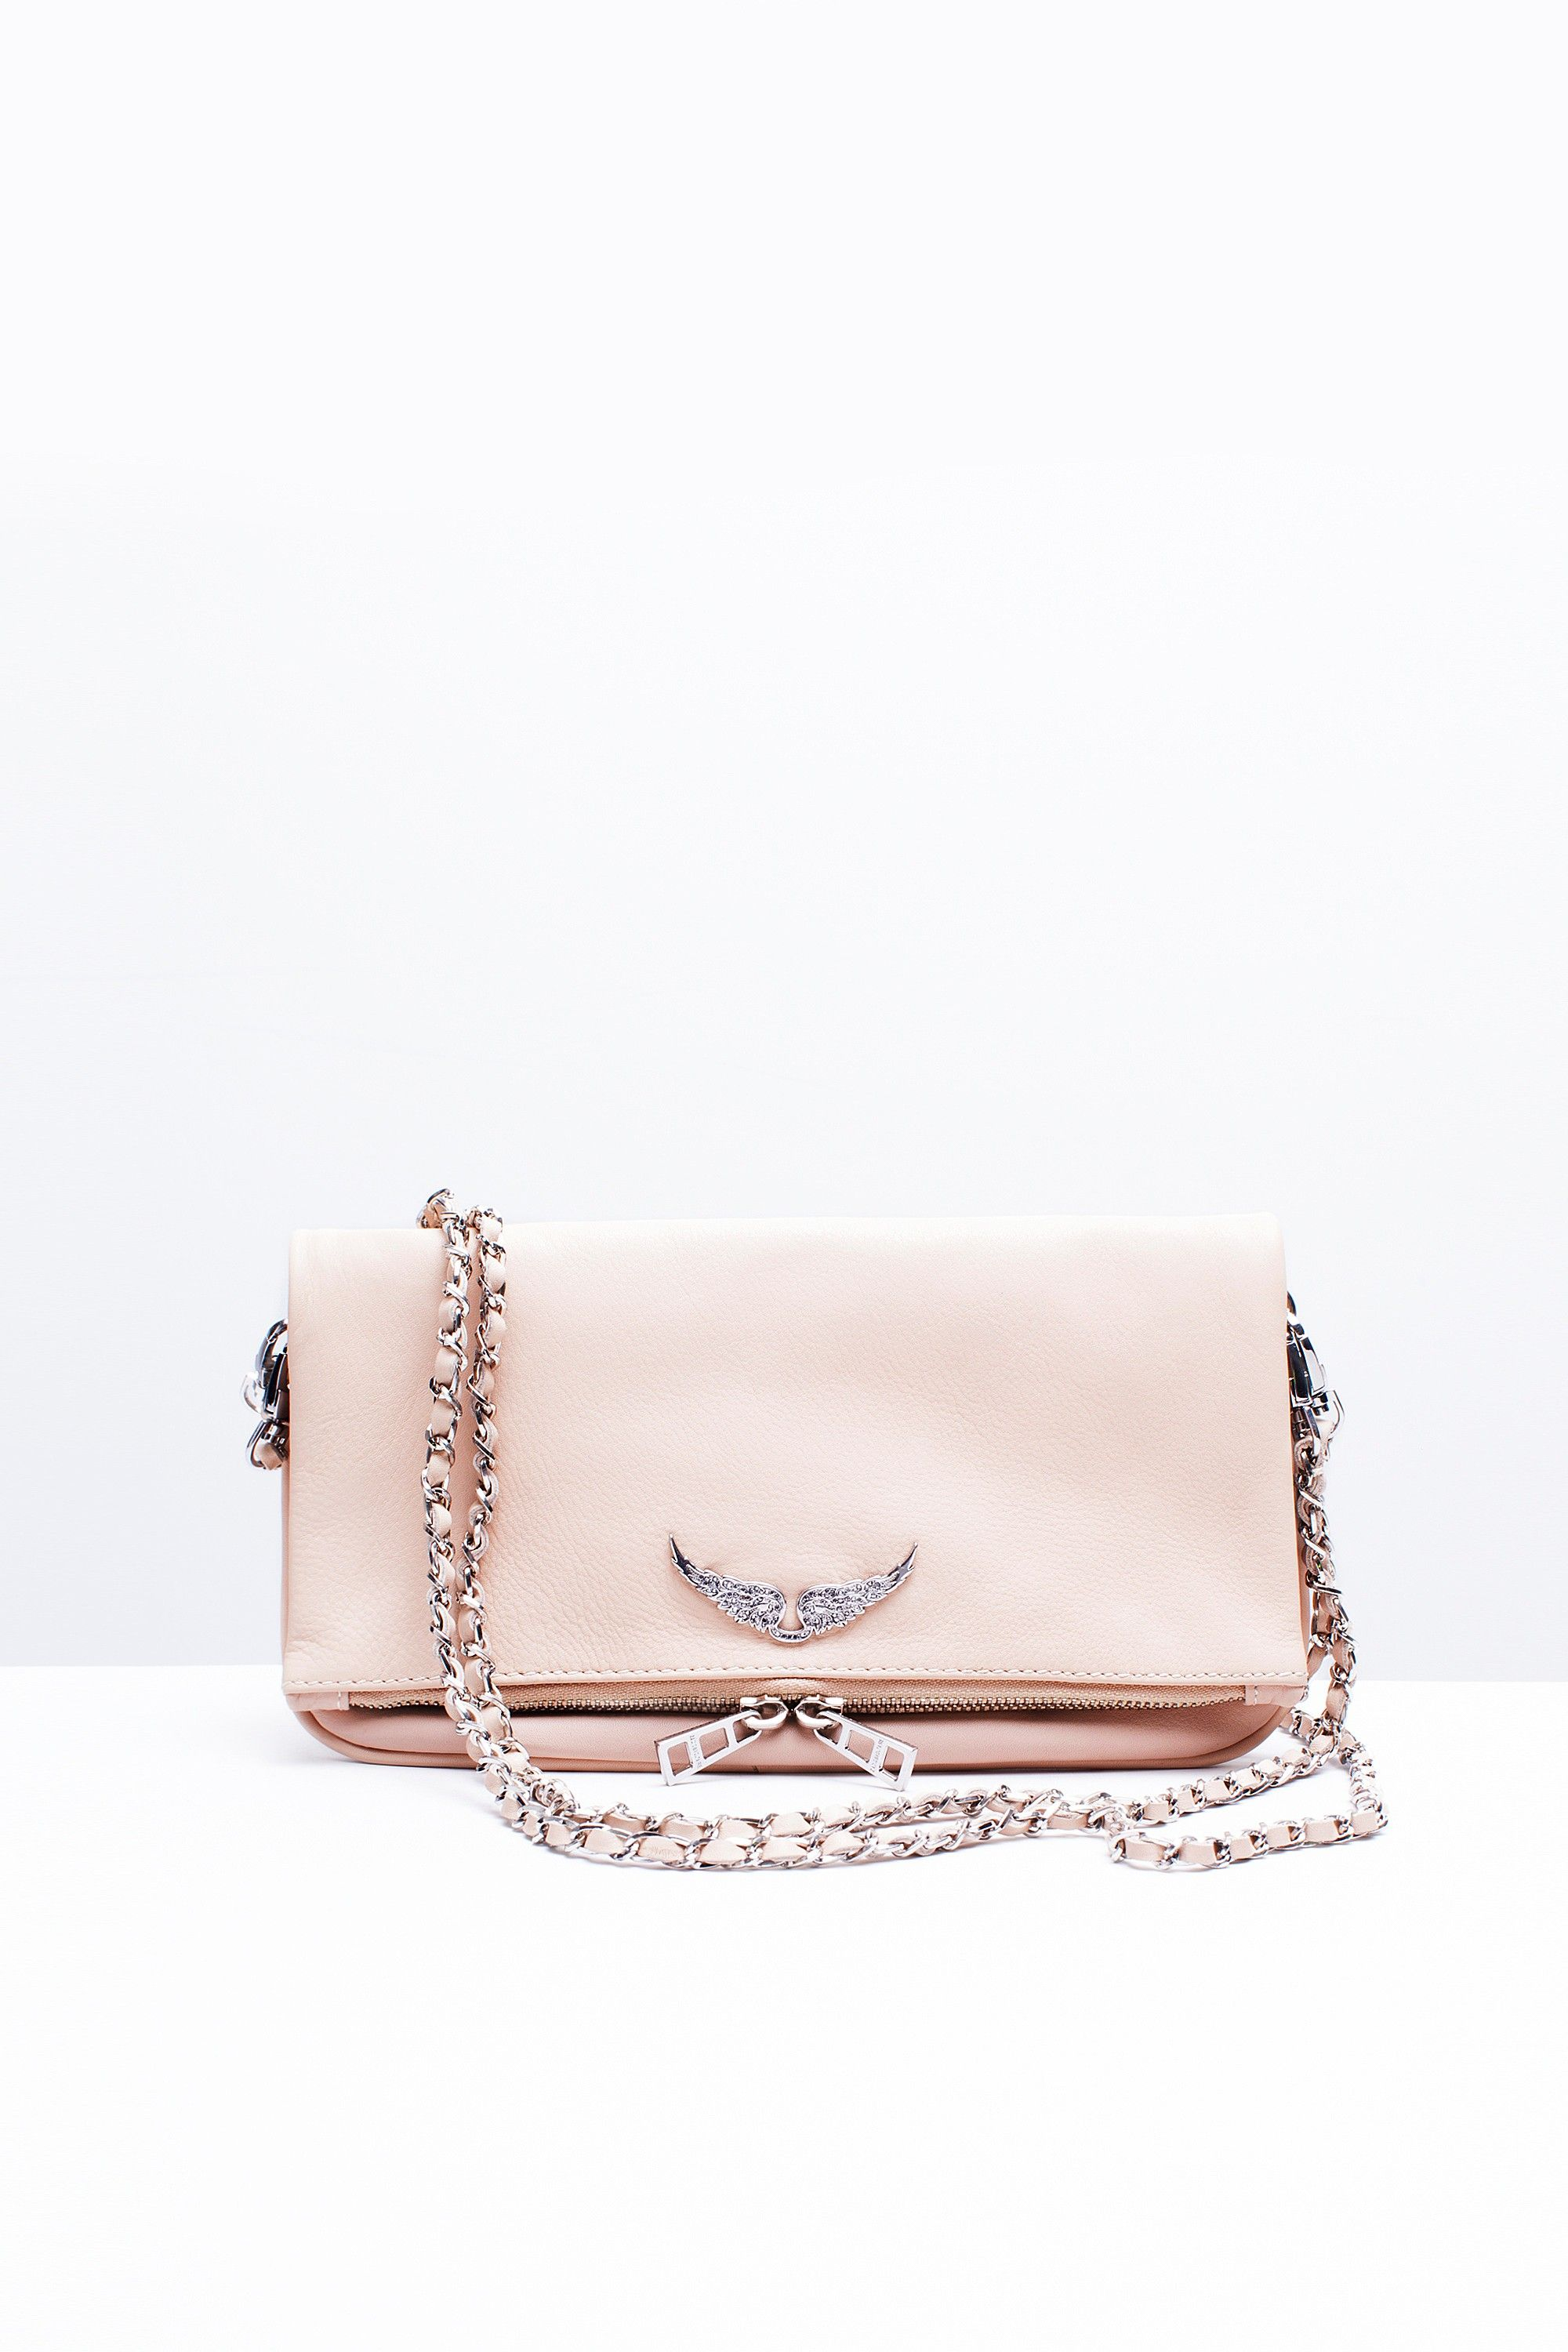 7f87b49c7a Zadig & Voltaire zip clutch, two removable chains interlaced with  leather, can be